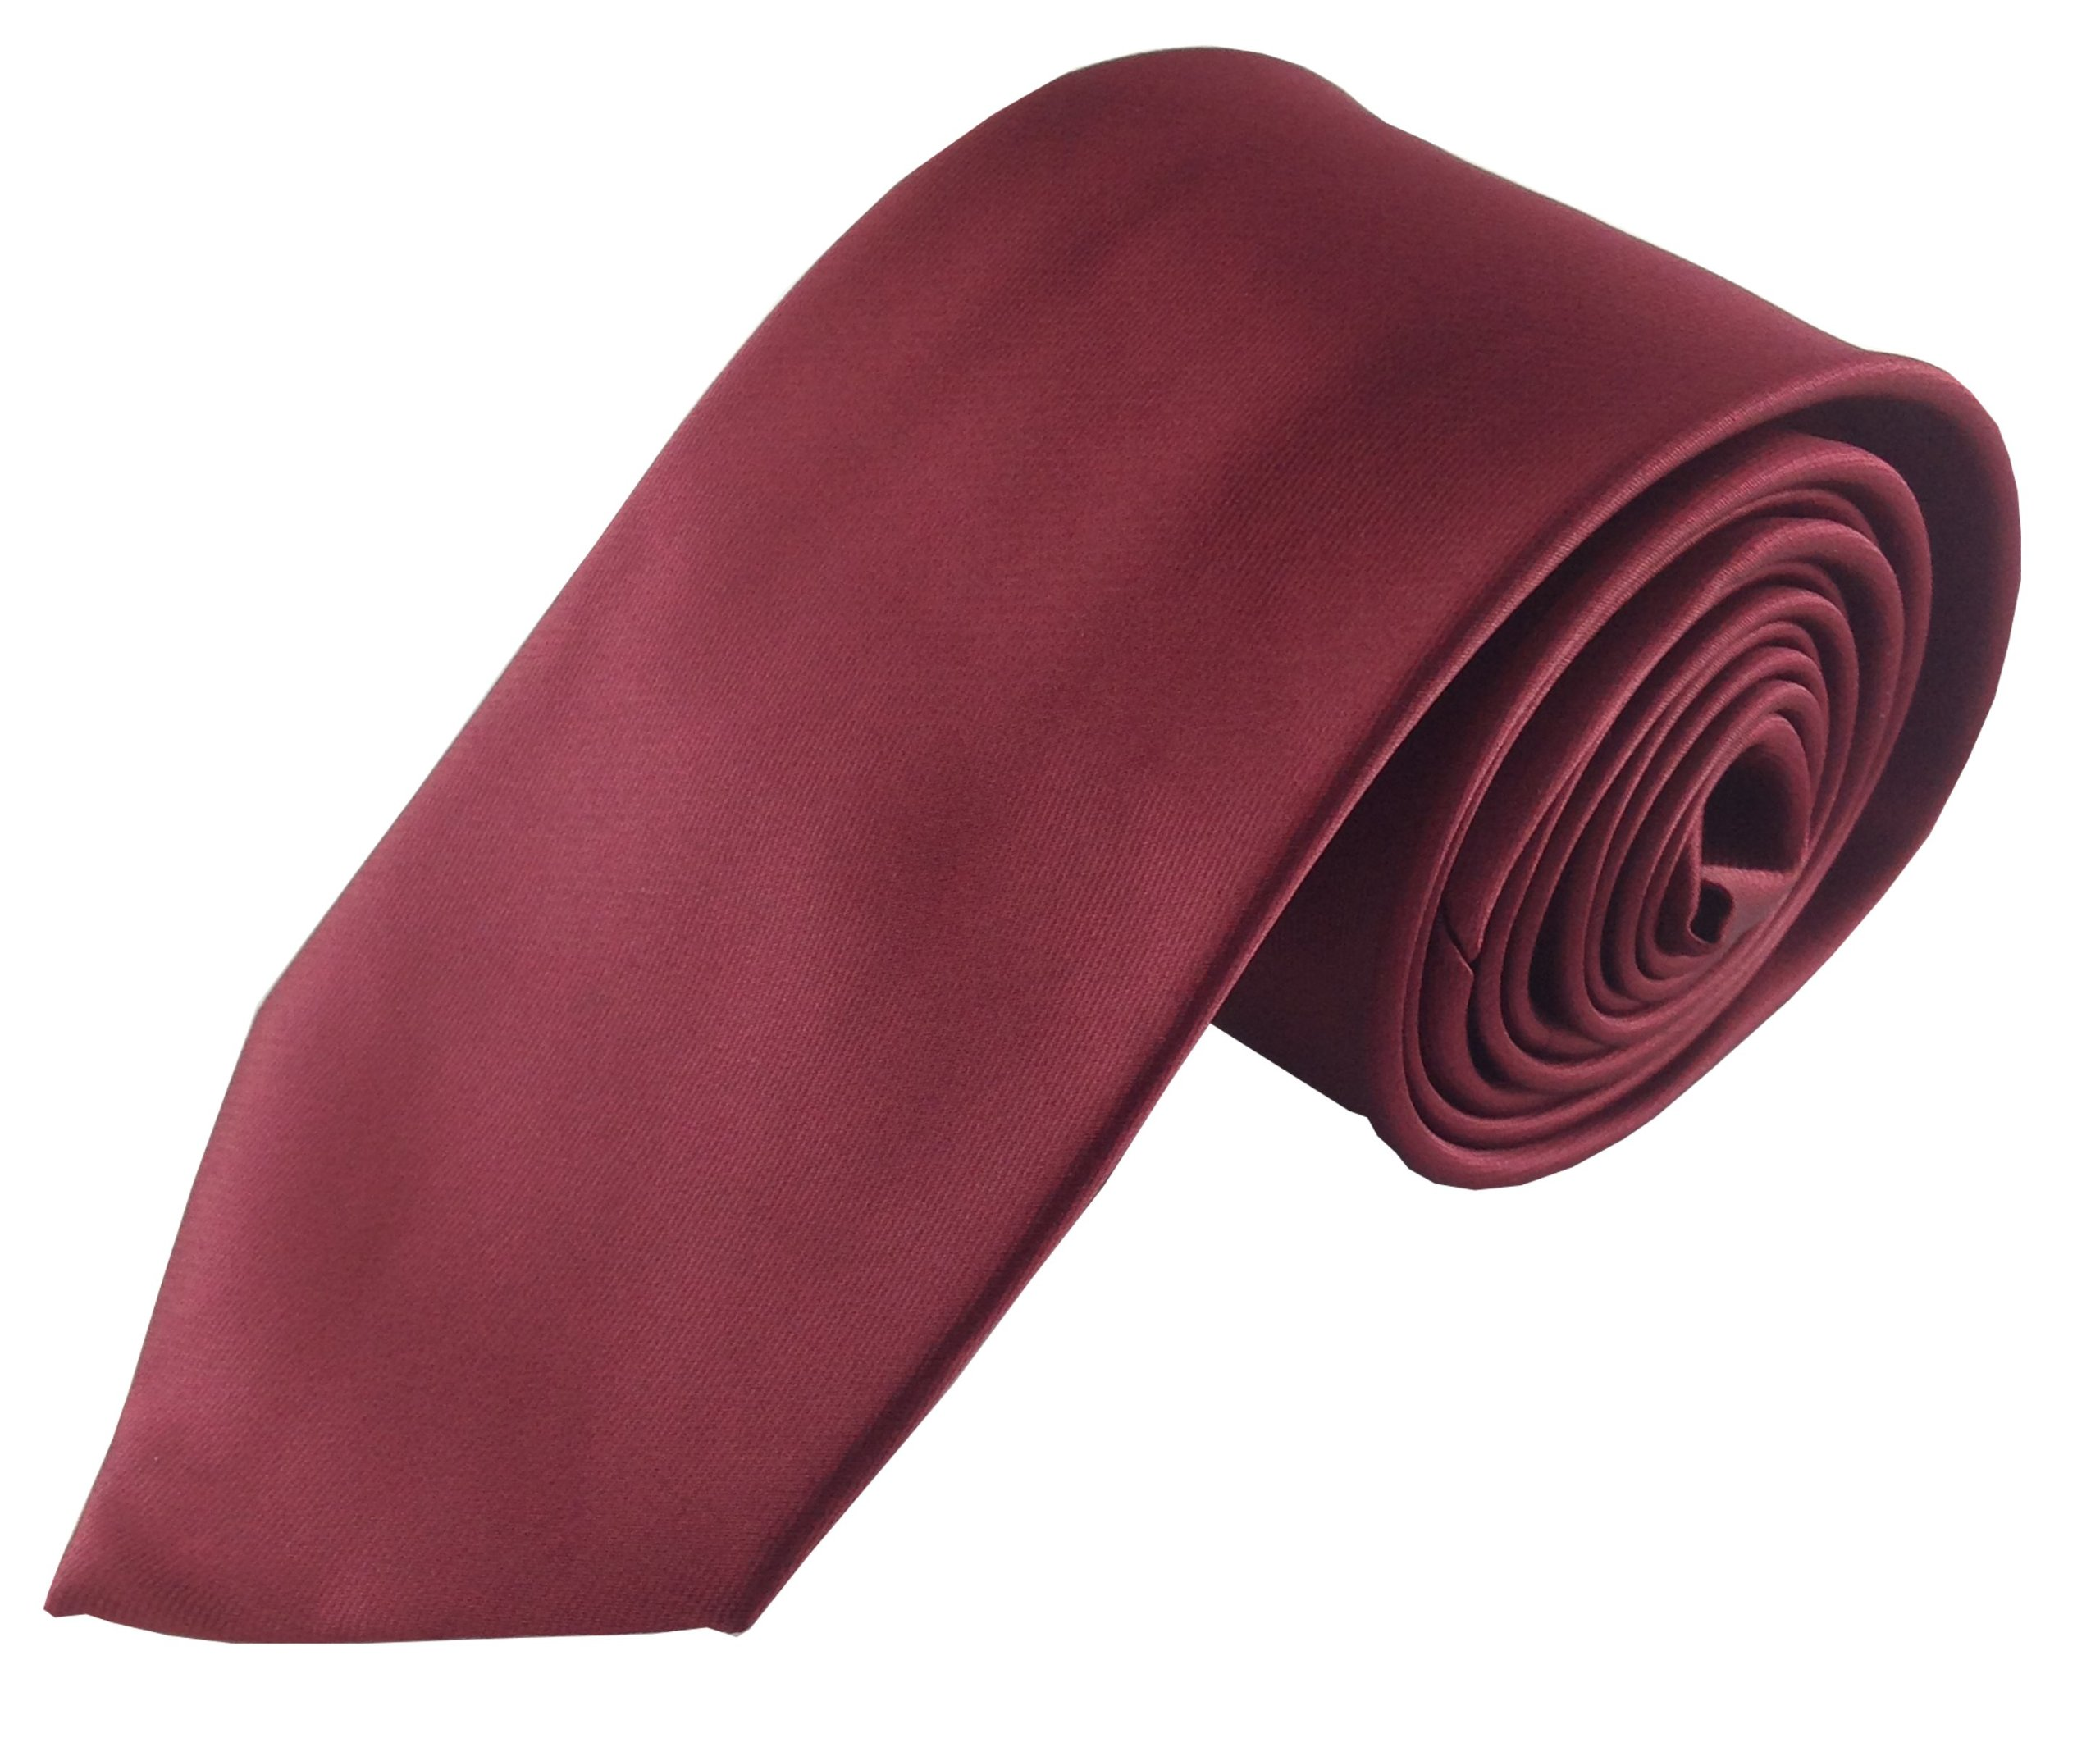 Deluxe Solid Color Wedding Necktie Package for Groomsmen with Matching Pocket Squares (8-Pack, Dark Maroon) by TieCastle